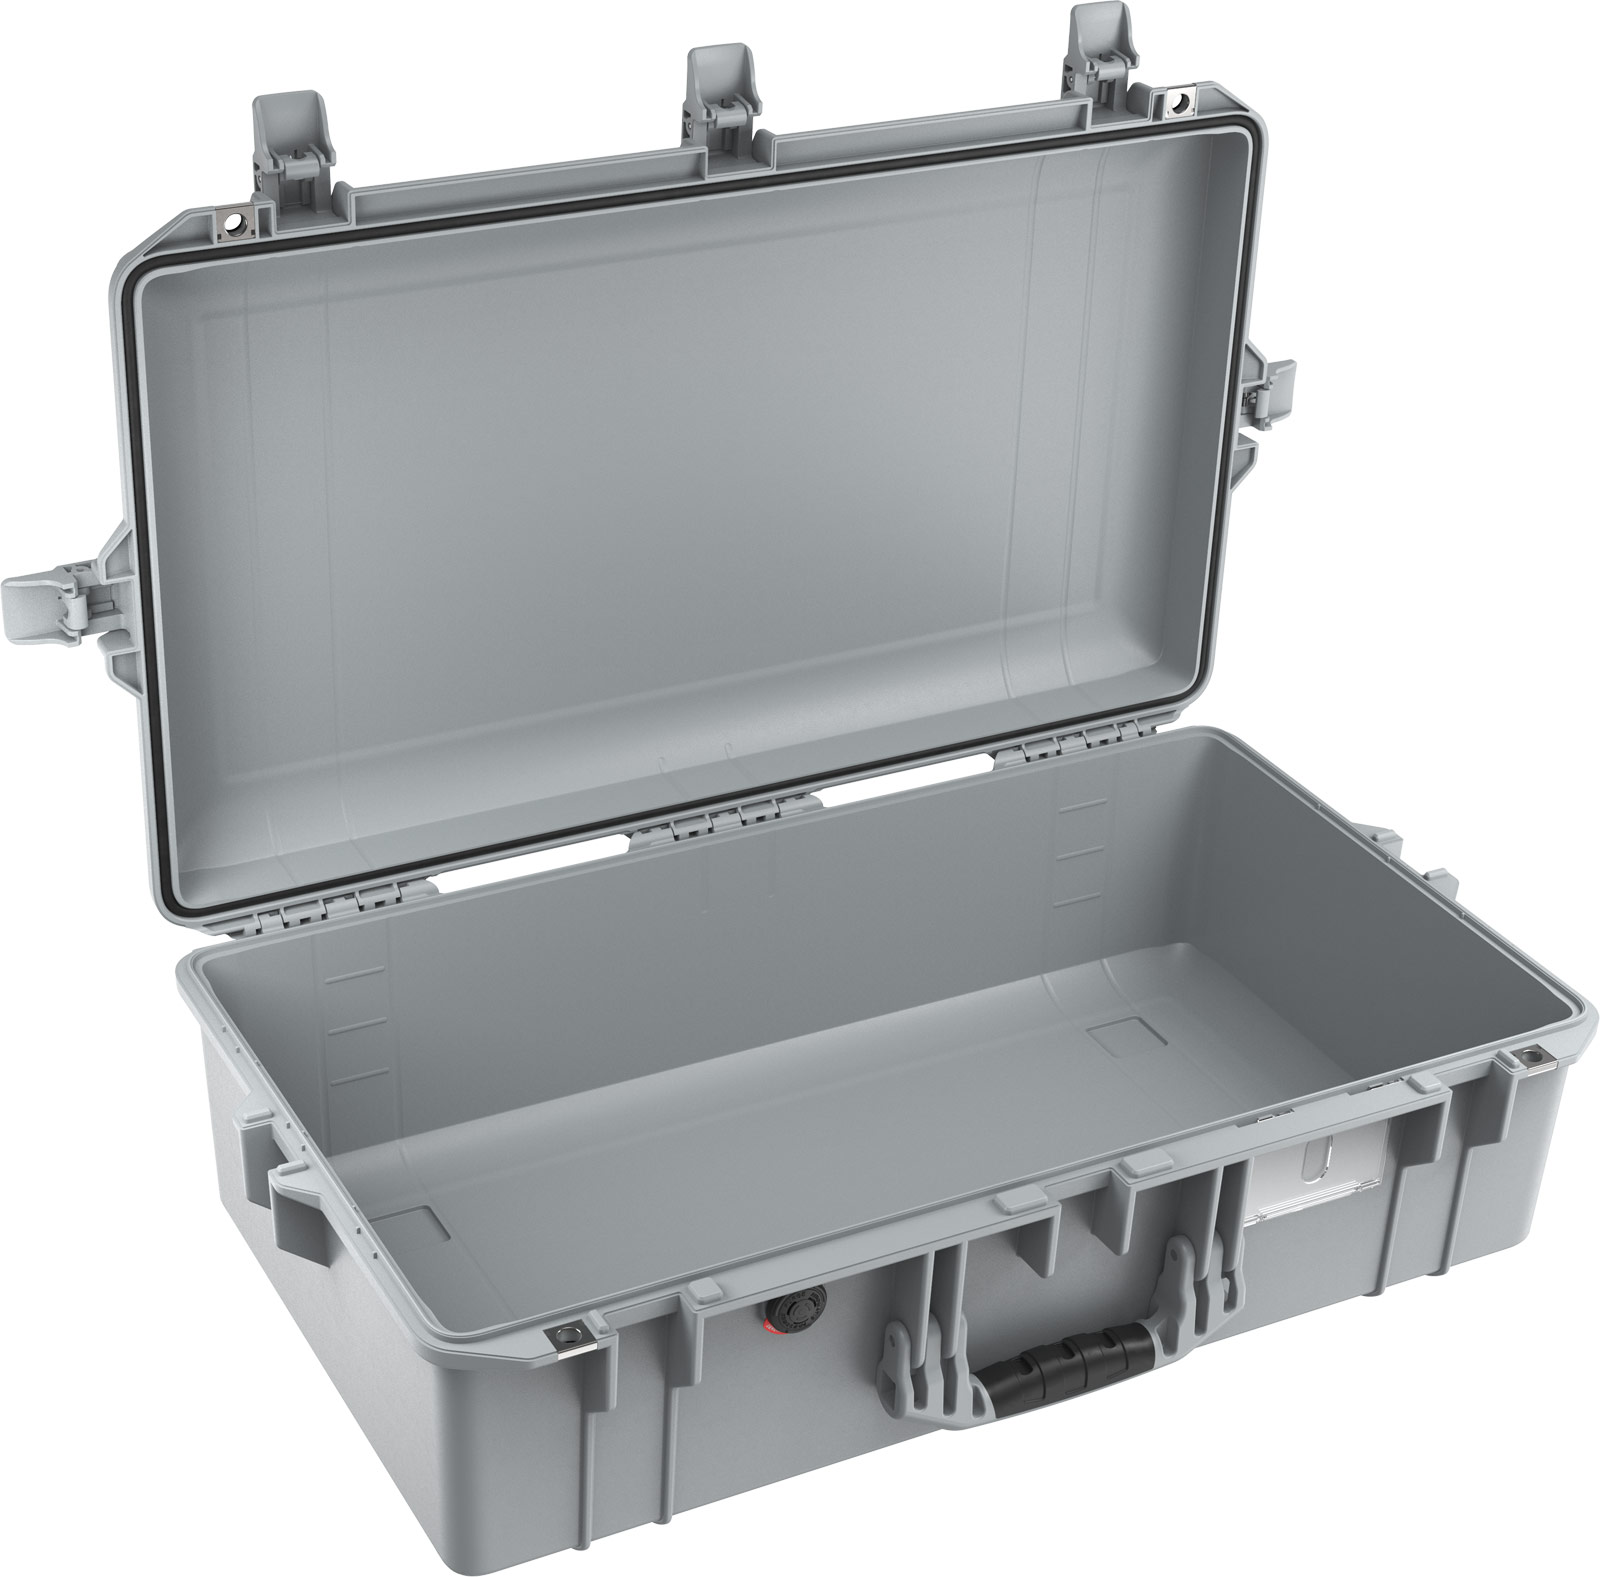 pelican 1605 silver camera air case